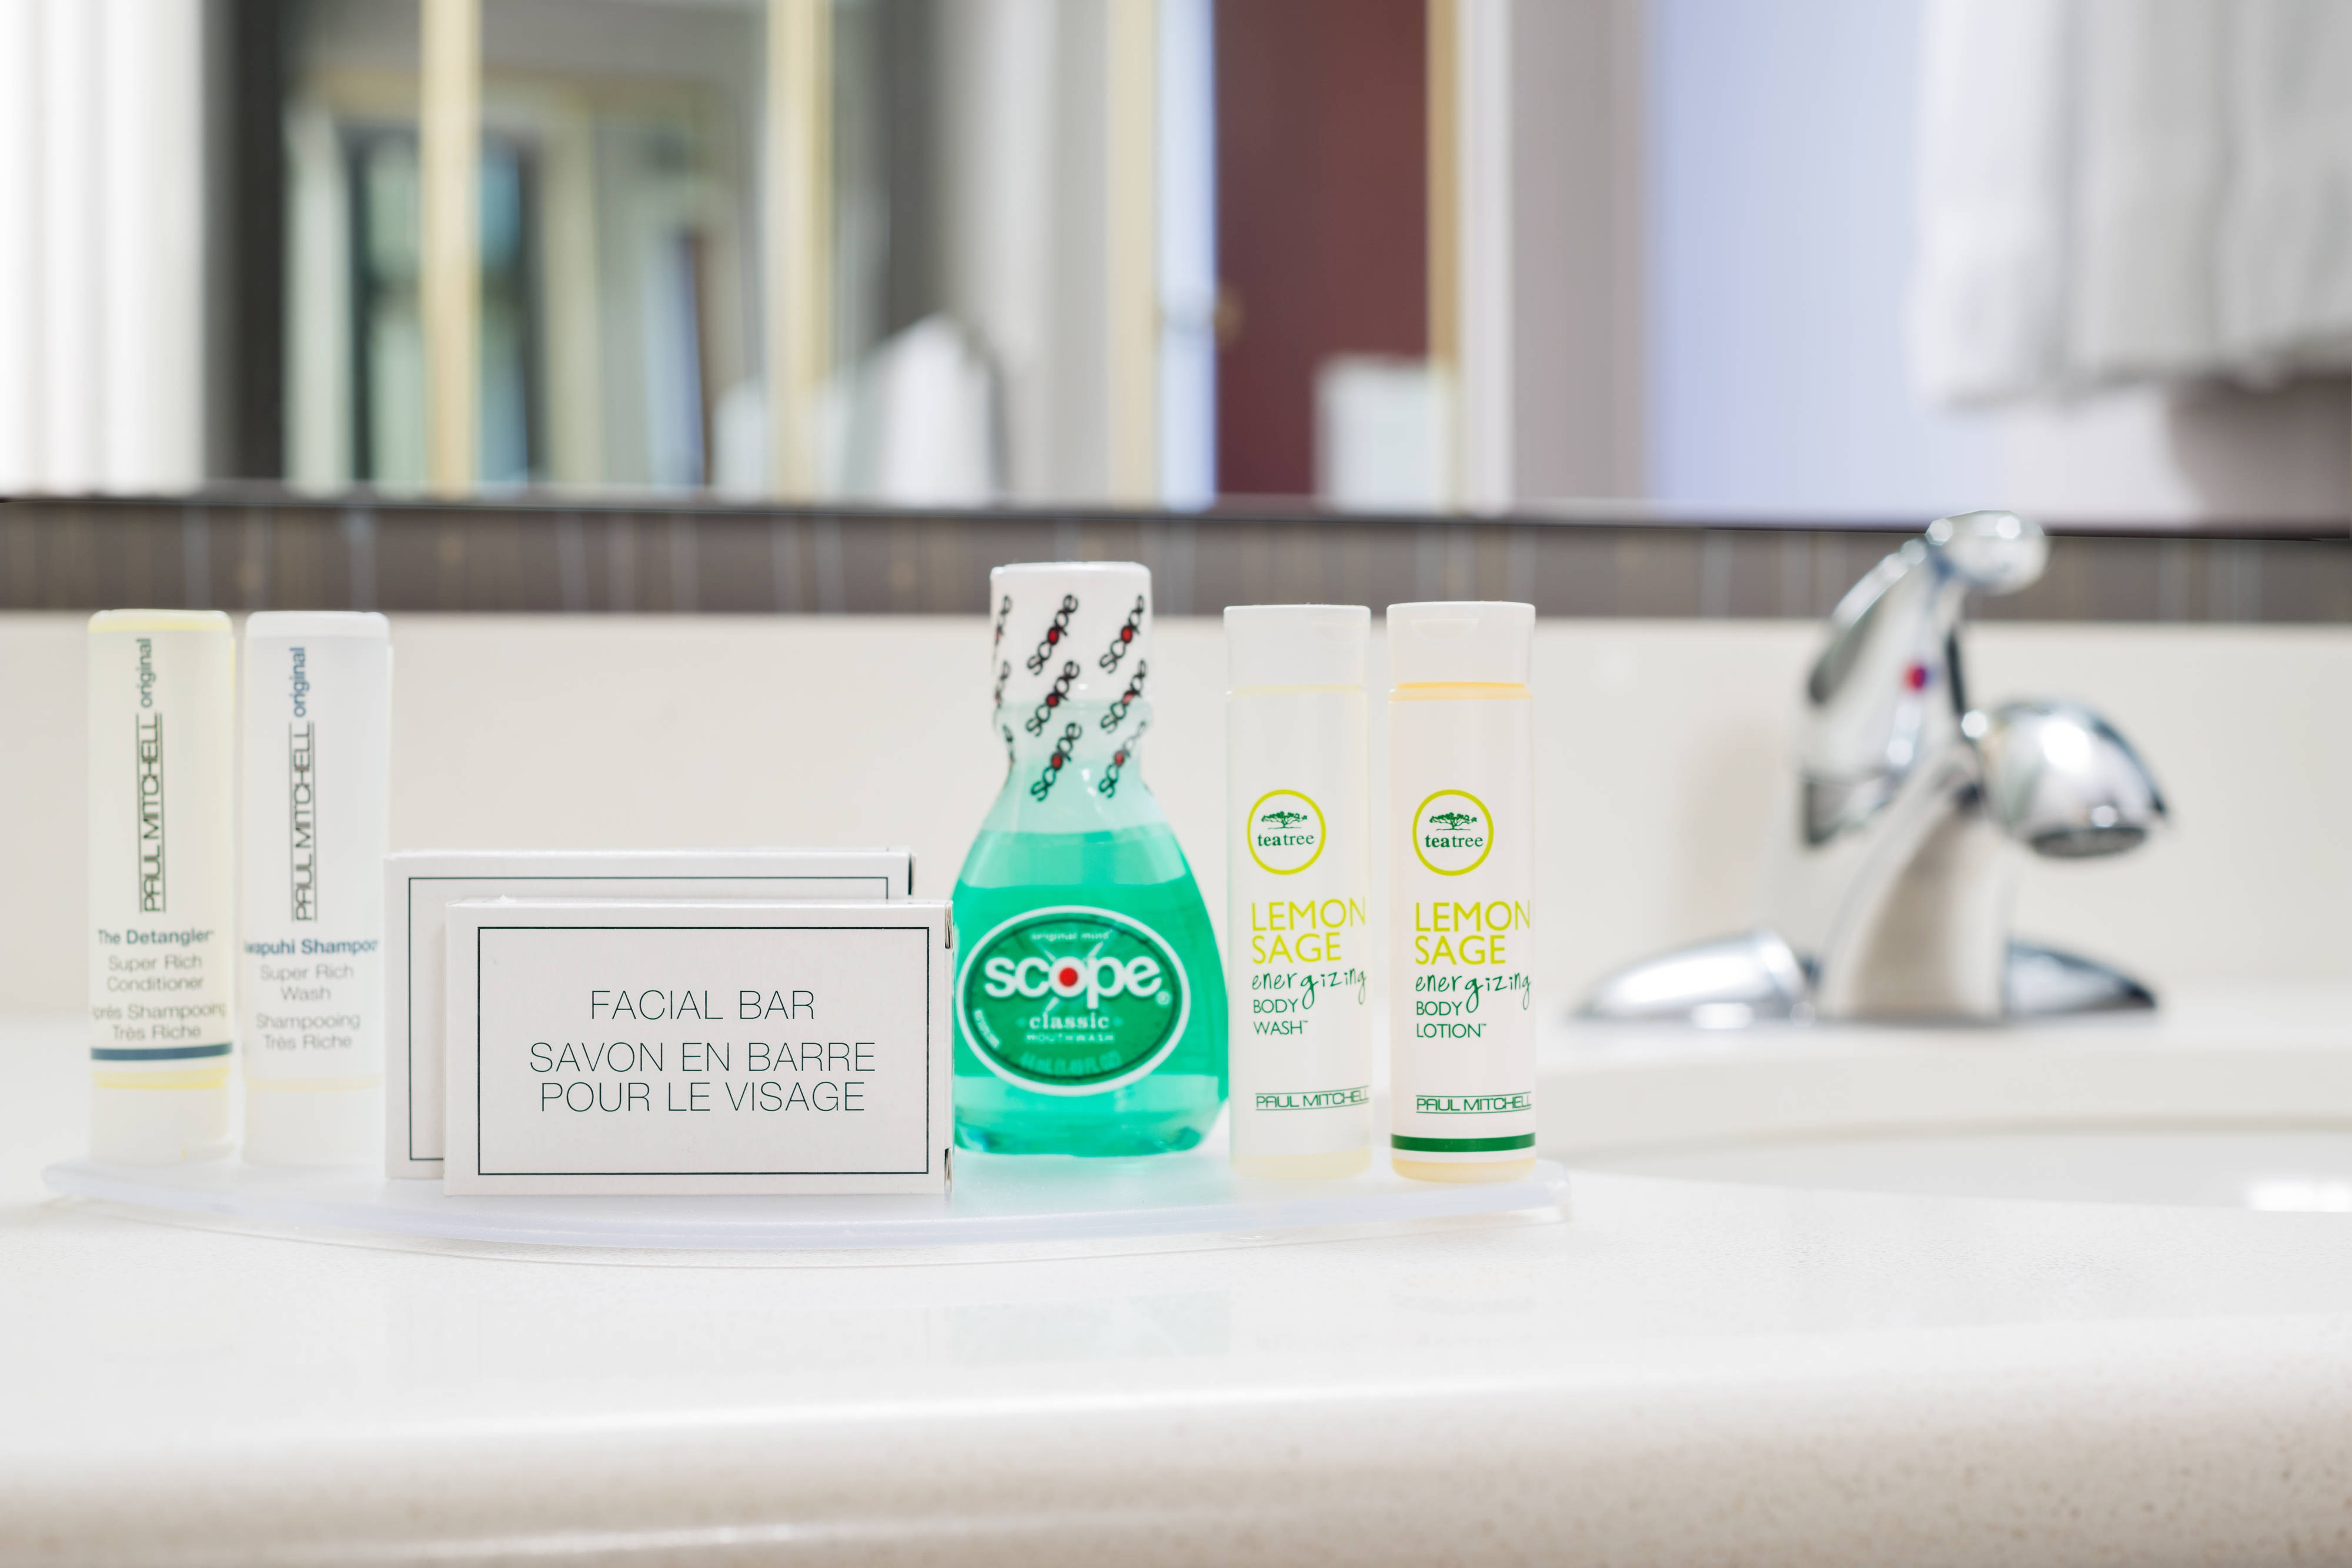 Executive King Guest Bathroom Amenities